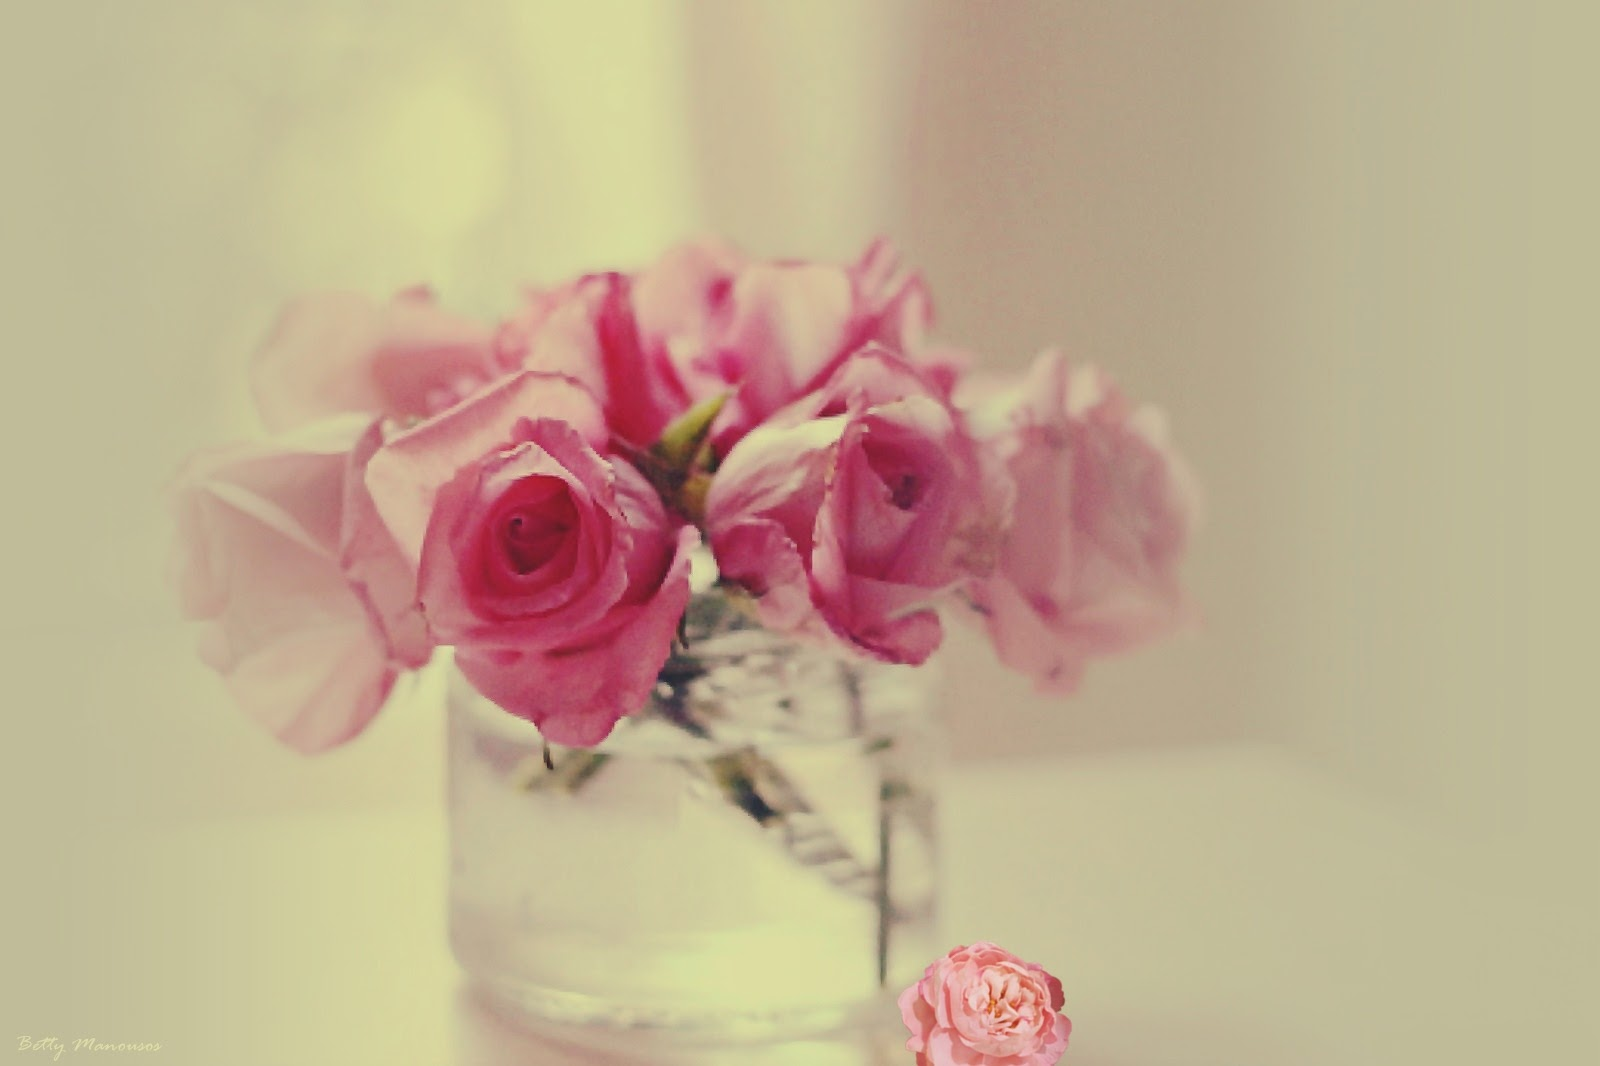 pink flora in a glass vase